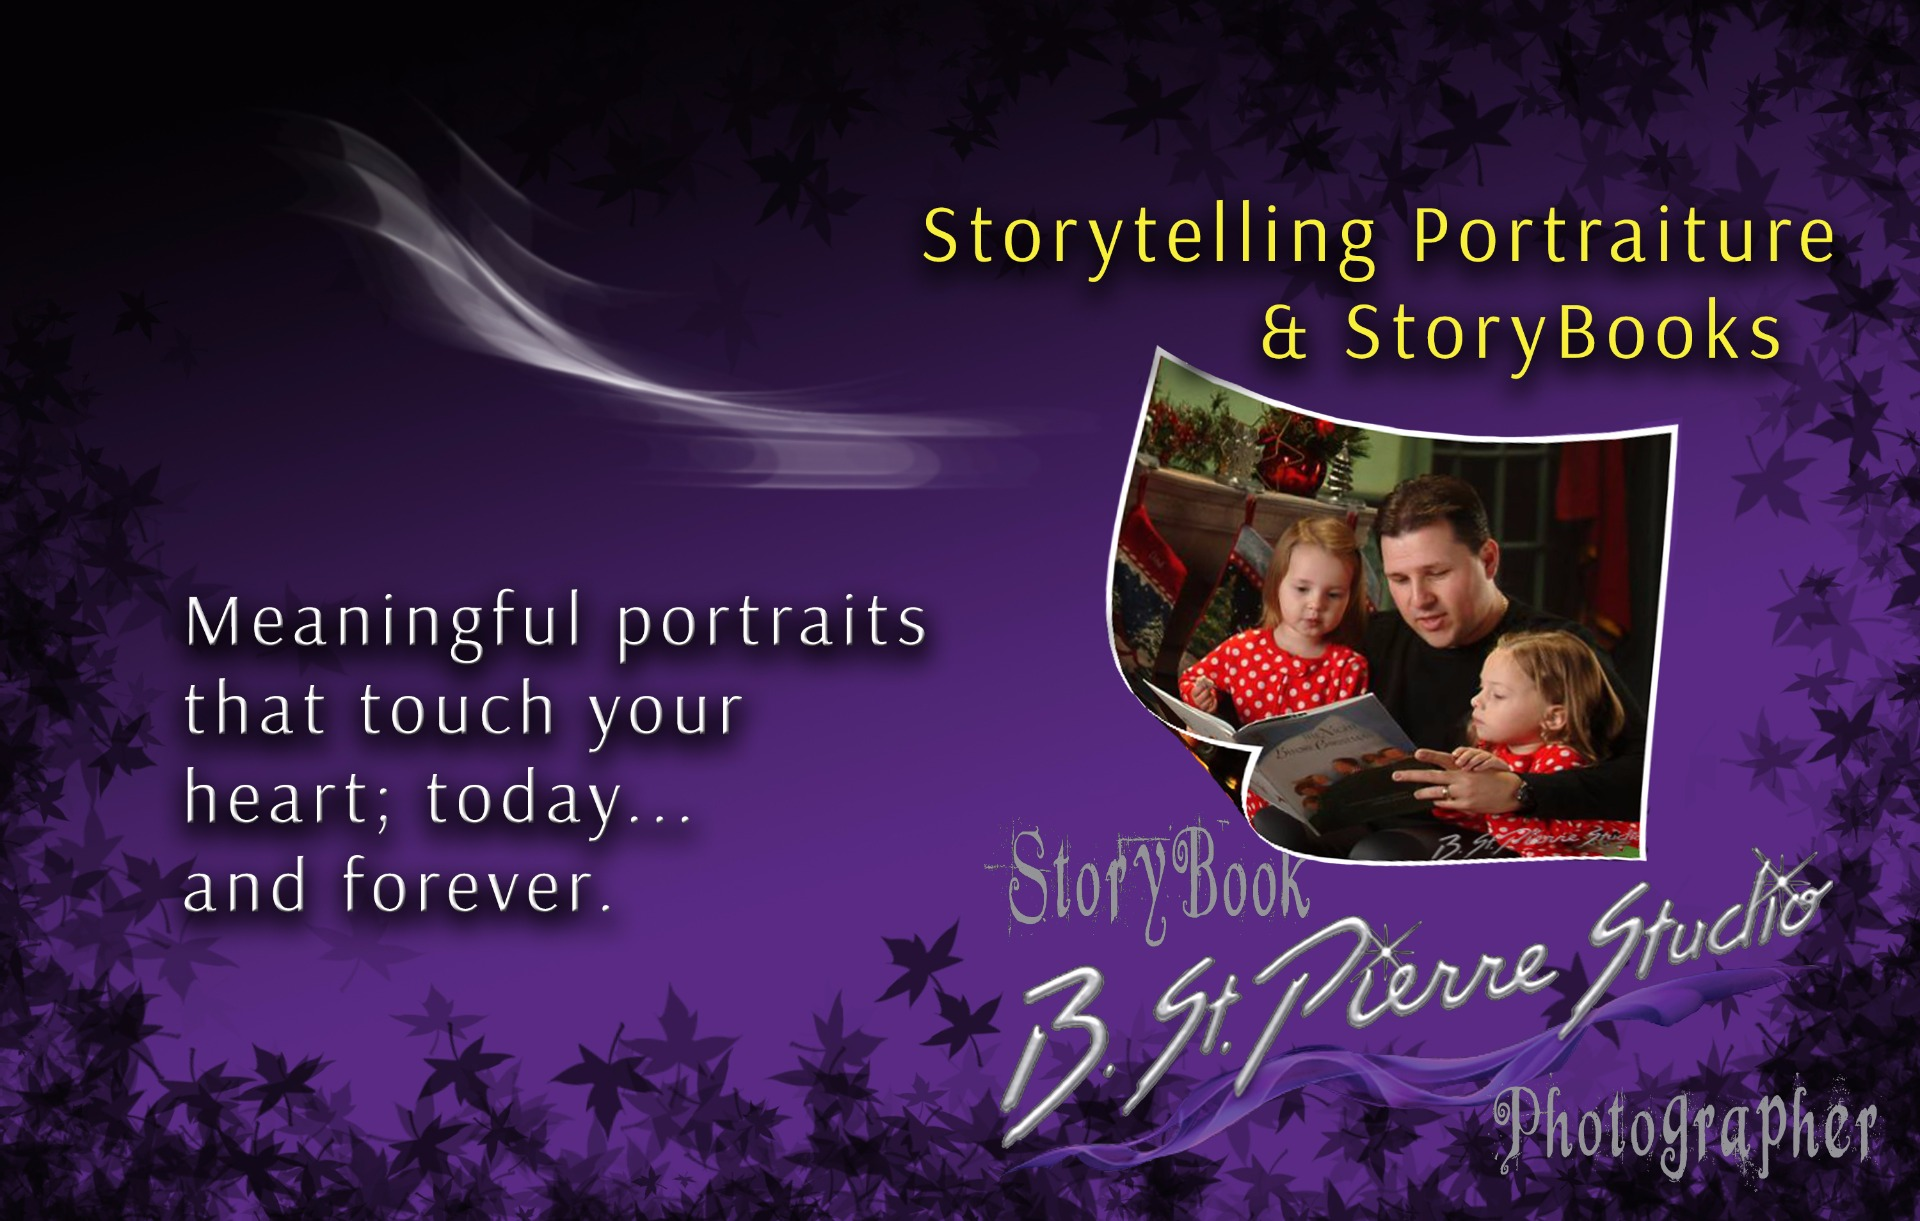 Storytelling Portraiture & StoryBooks